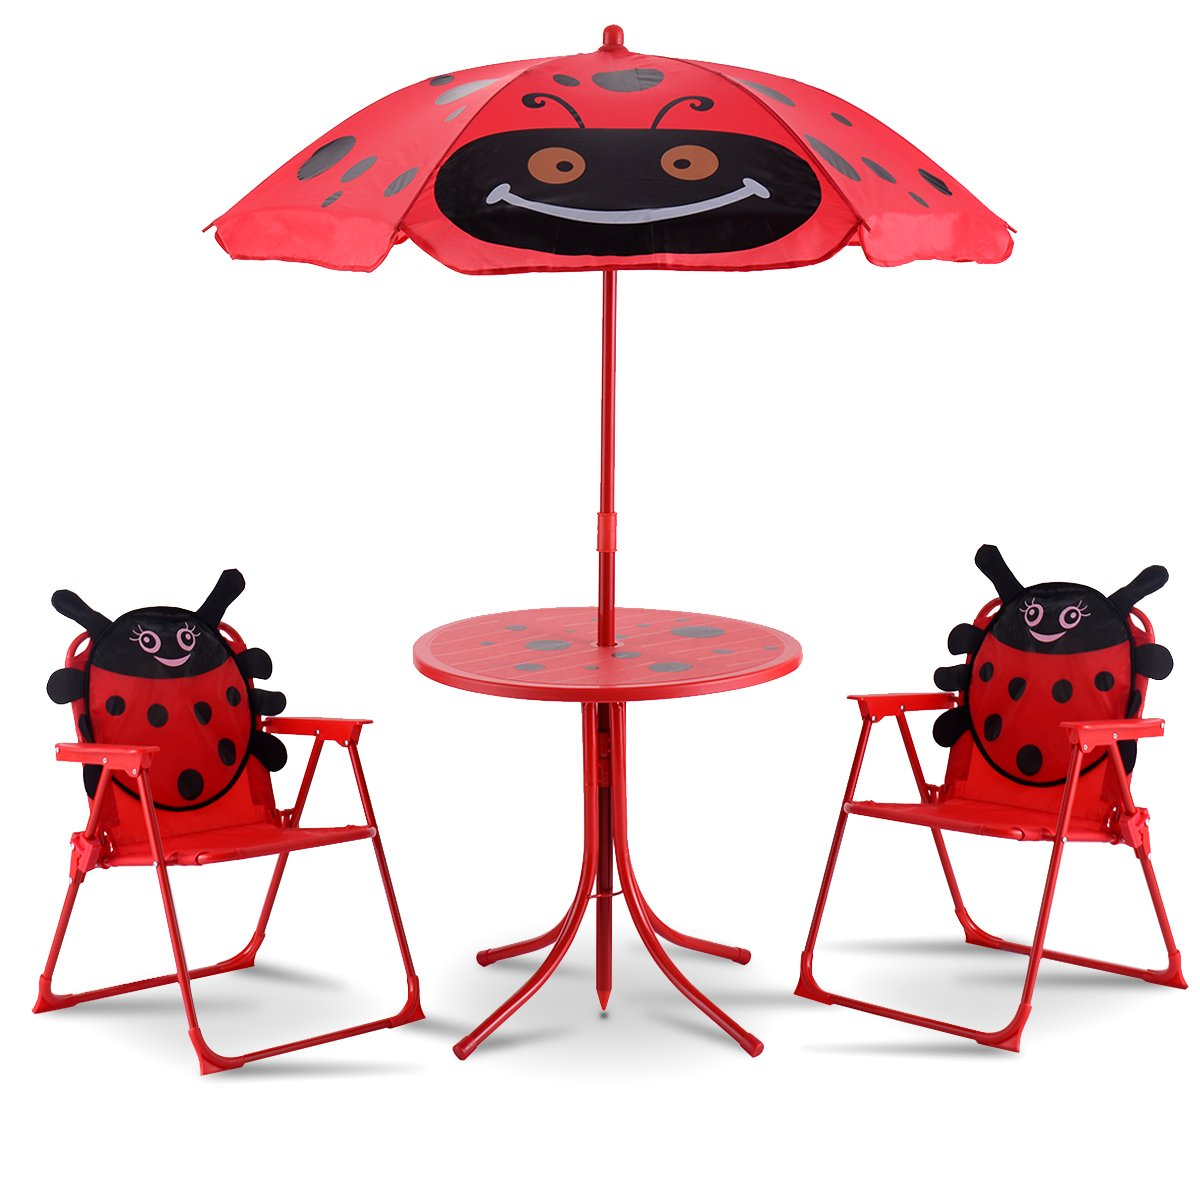 COSTWAY Kids Table and 2 Chairs Set with Ladybug Pattern Metal Frame Foldable Furniture  sc 1 st  Amazon UK & Kids Patio Furniture: Amazon.co.uk